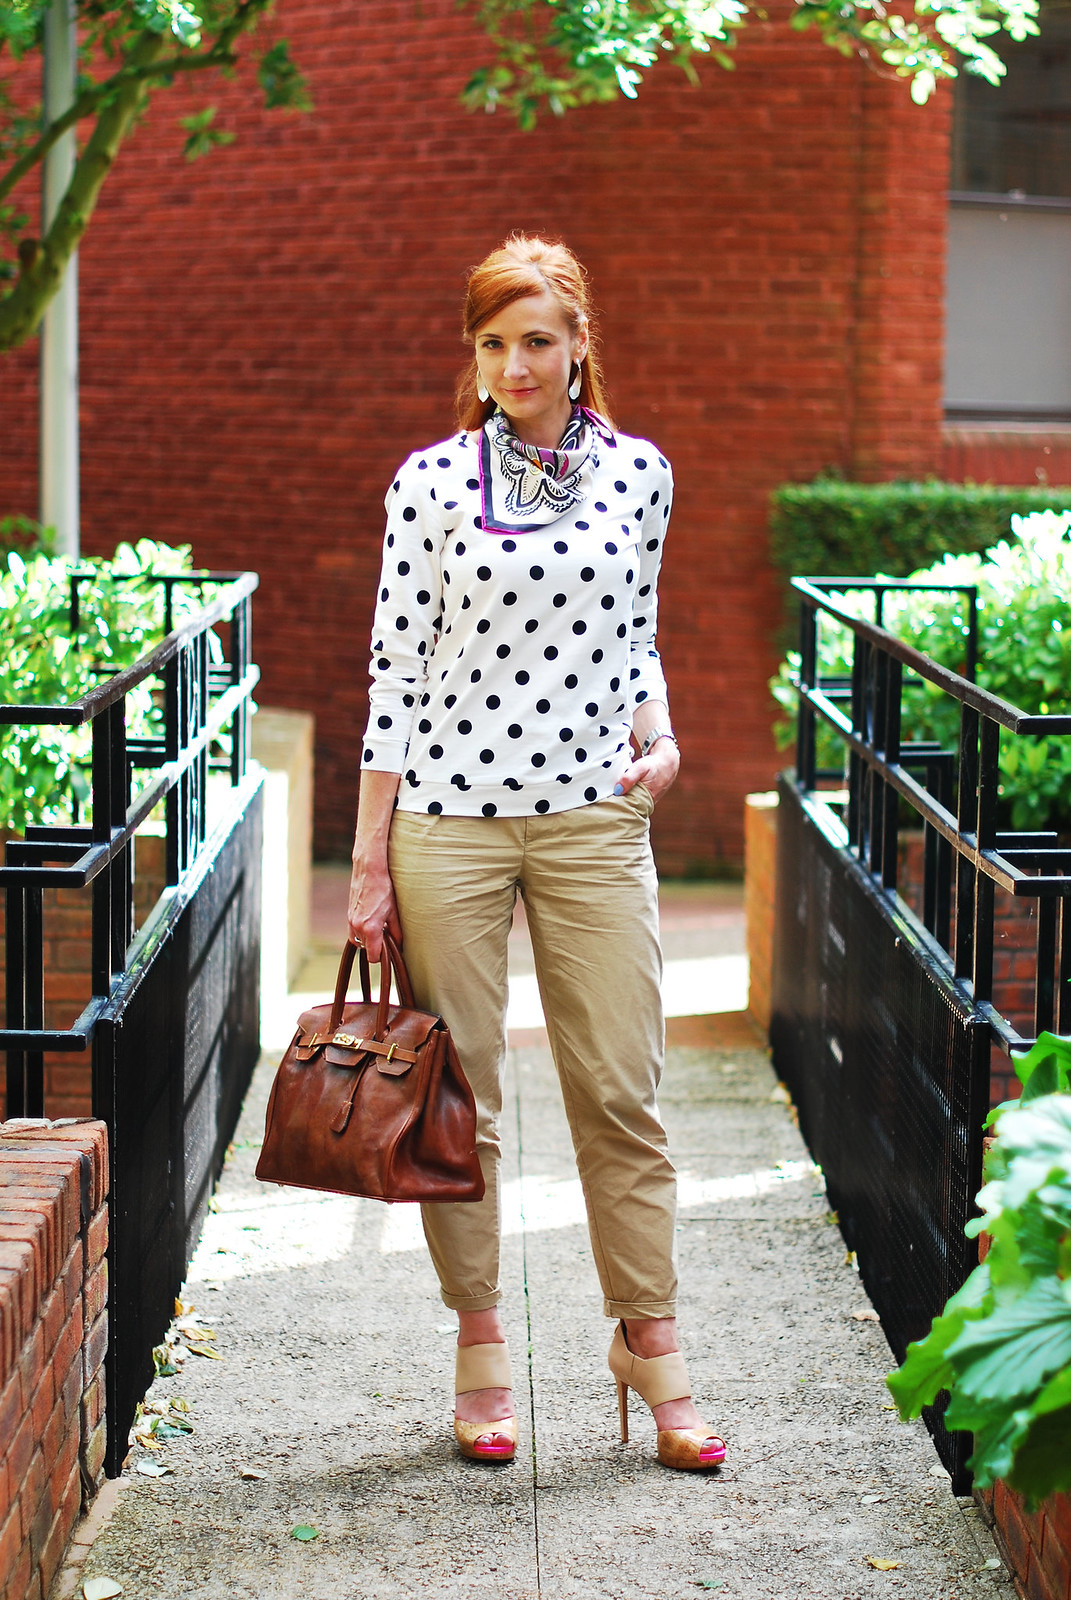 Black & white polka dots with chinos